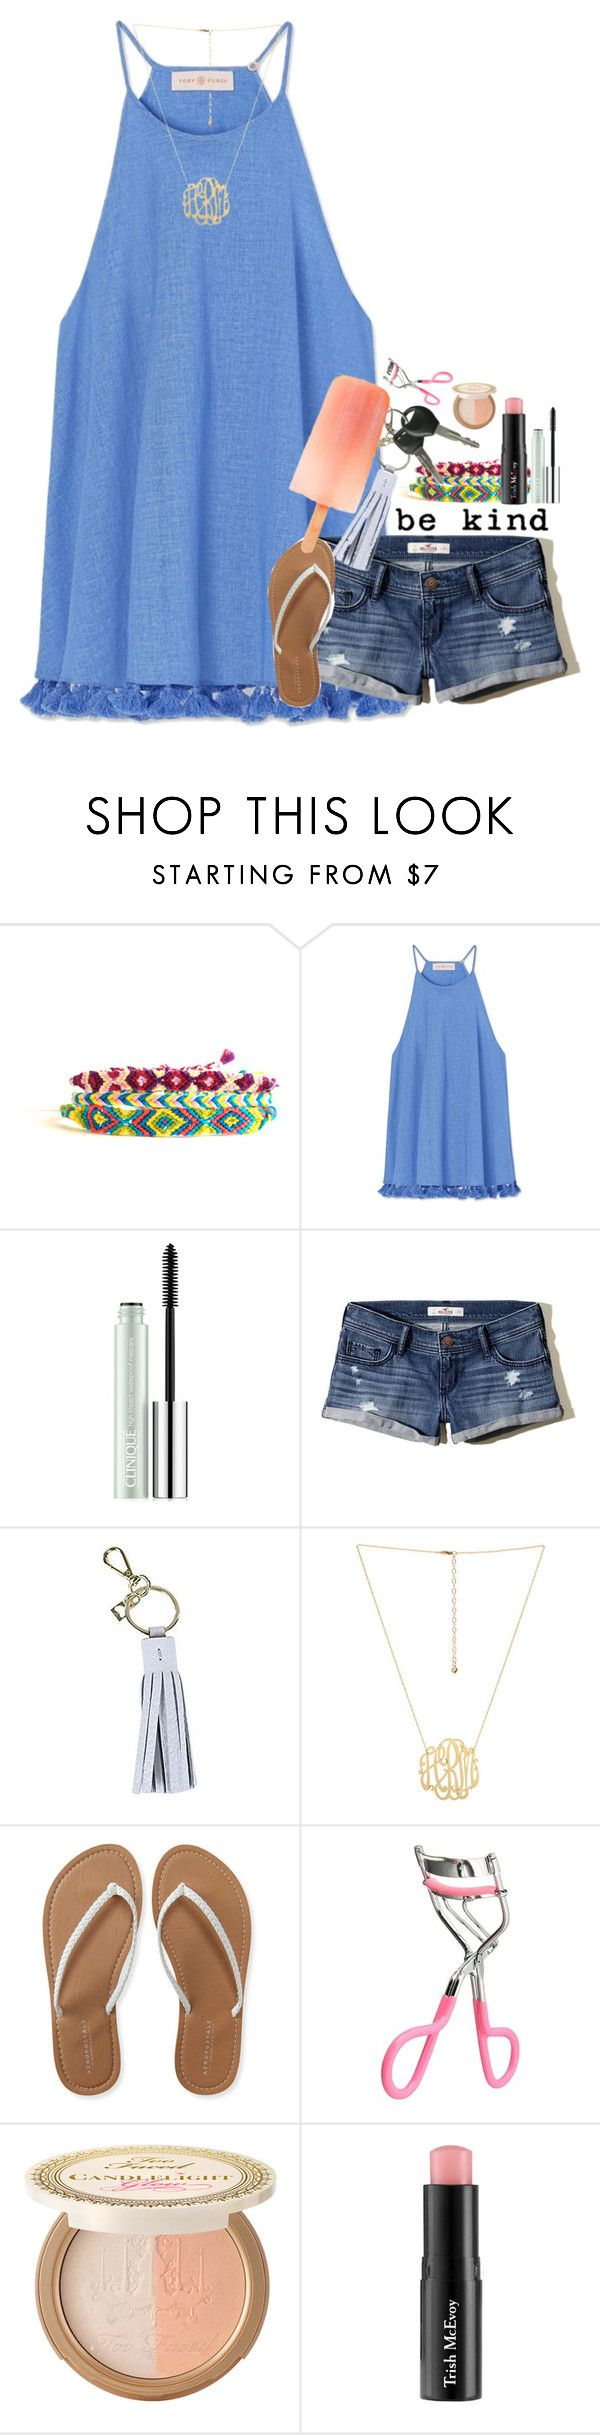 what are adjectives to describe you tory hollister and what are 3 adjectives to describe you by sdyerrtx 10084 liked on polyvore